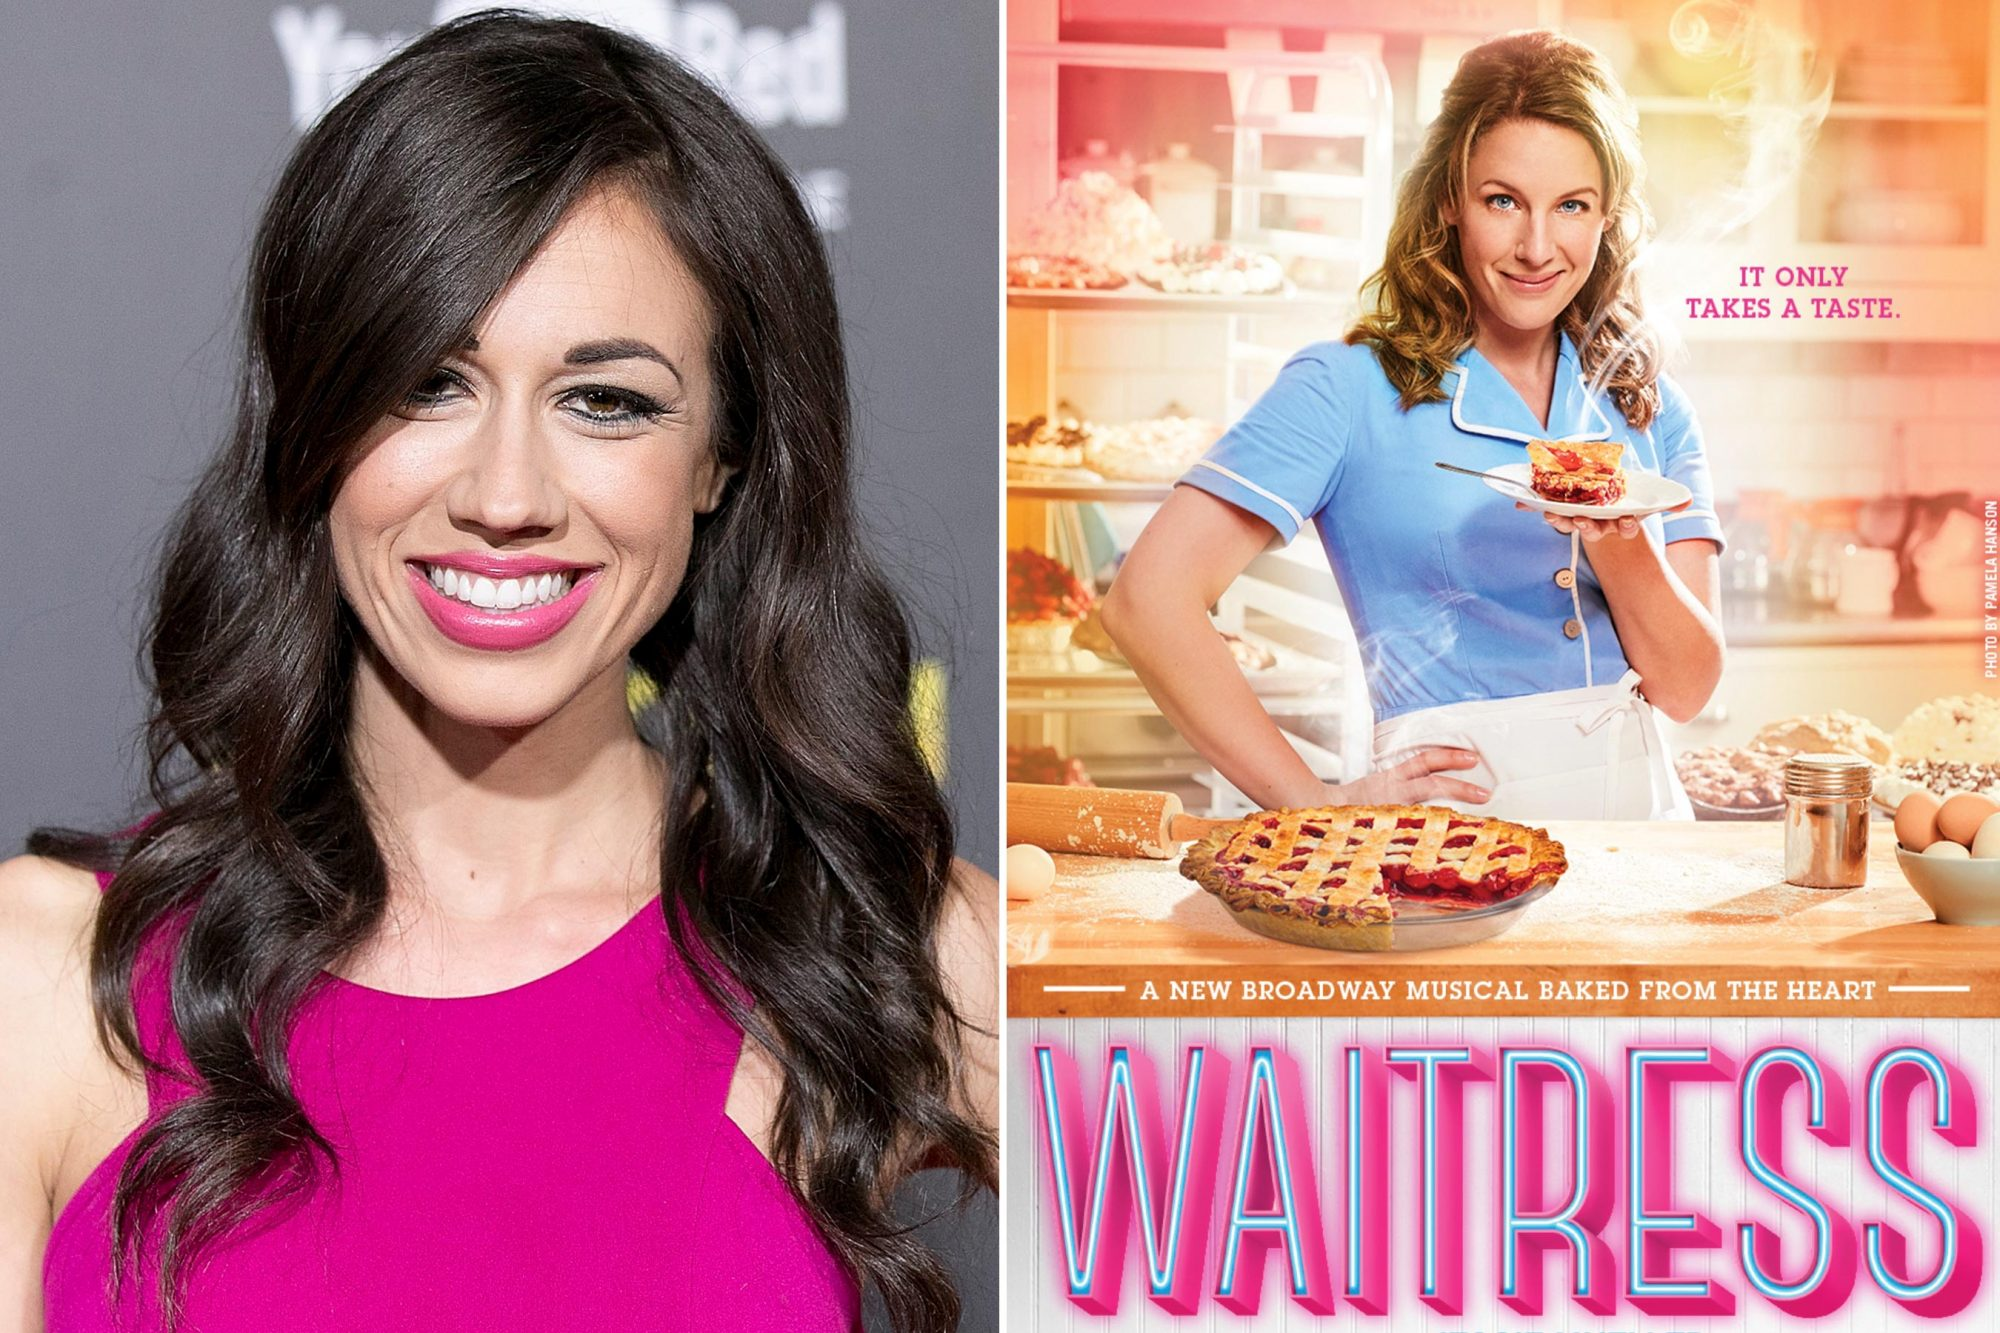 miranda-sings-waitress